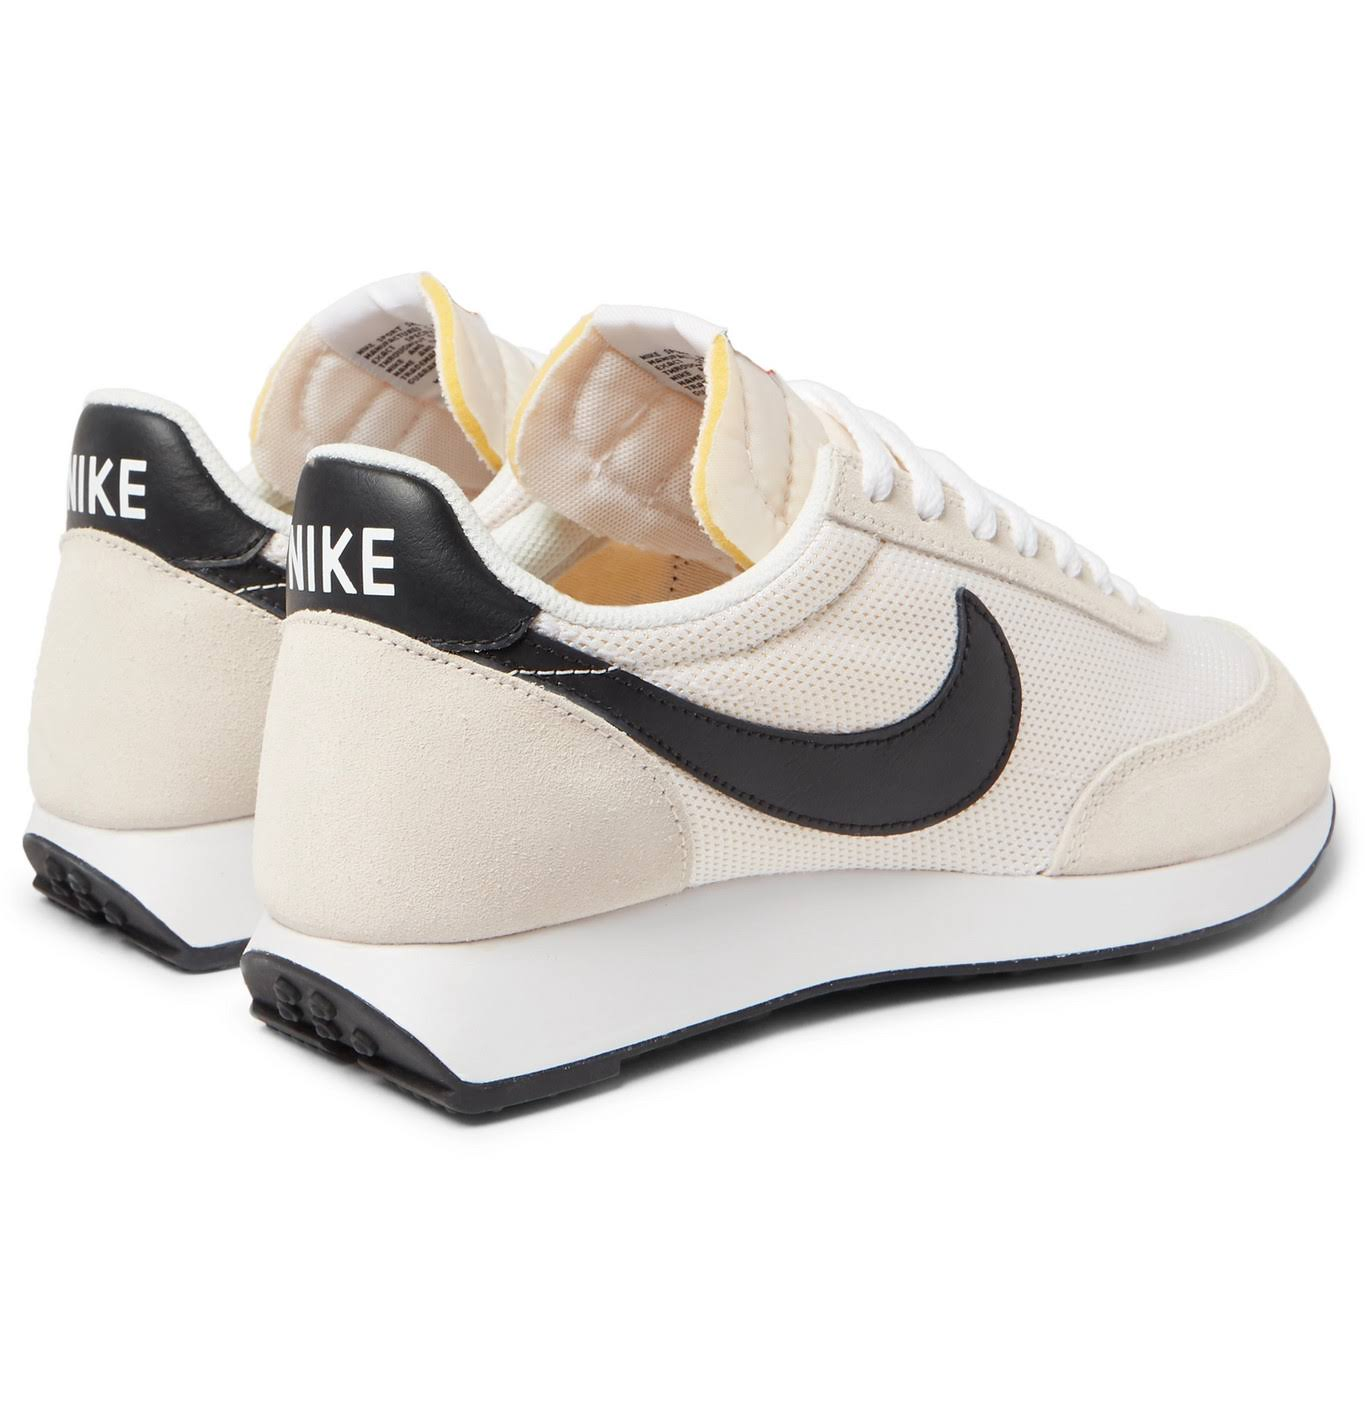 Nike Air Tailwind 79 White